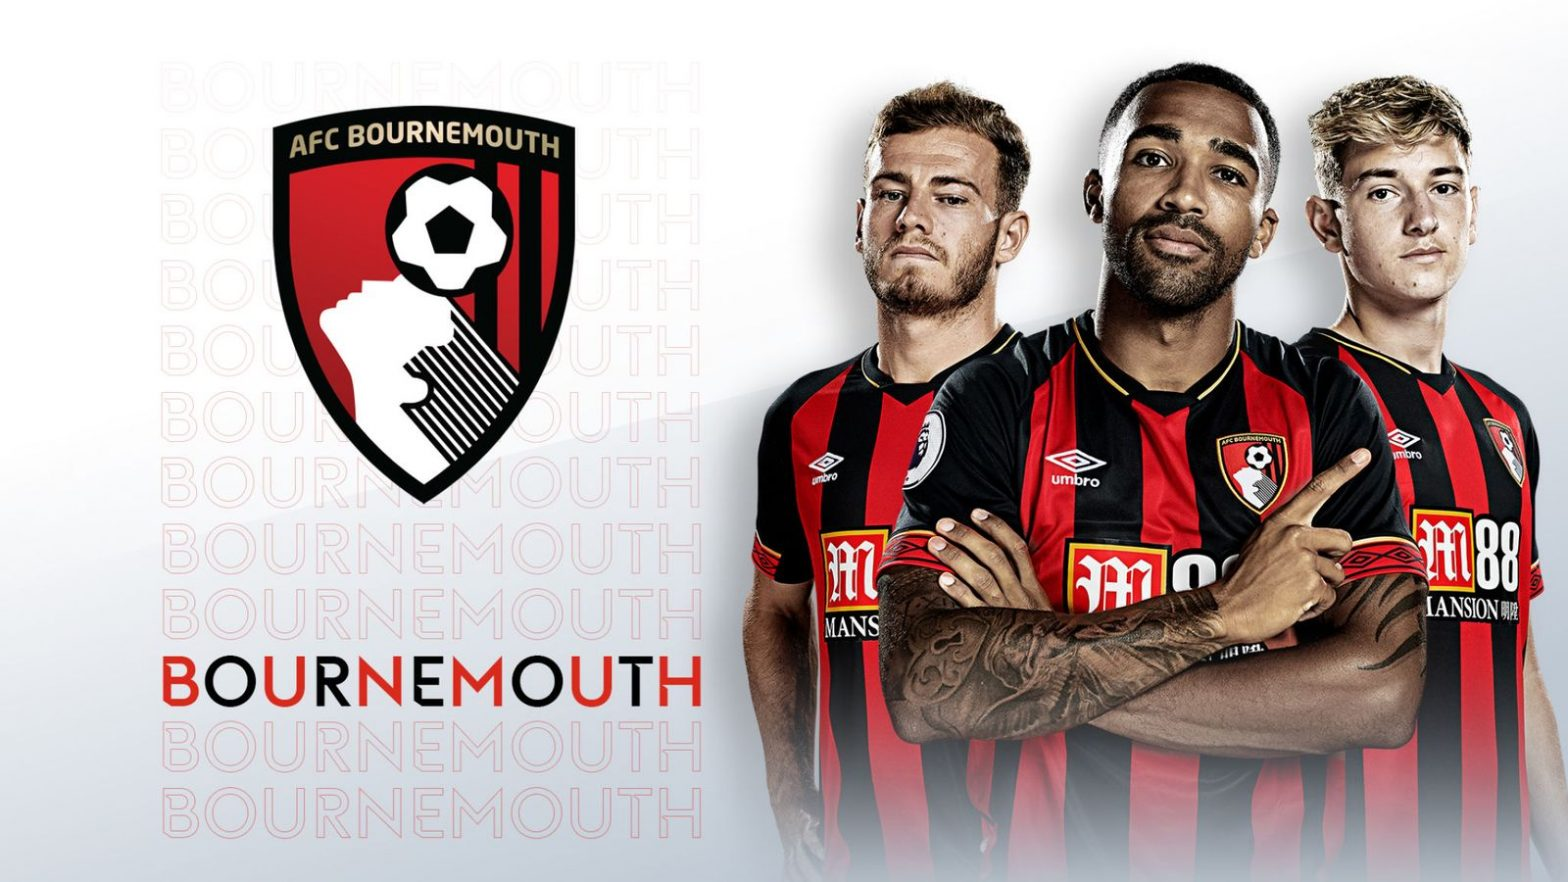 Bournemouth fixtures 2019/20